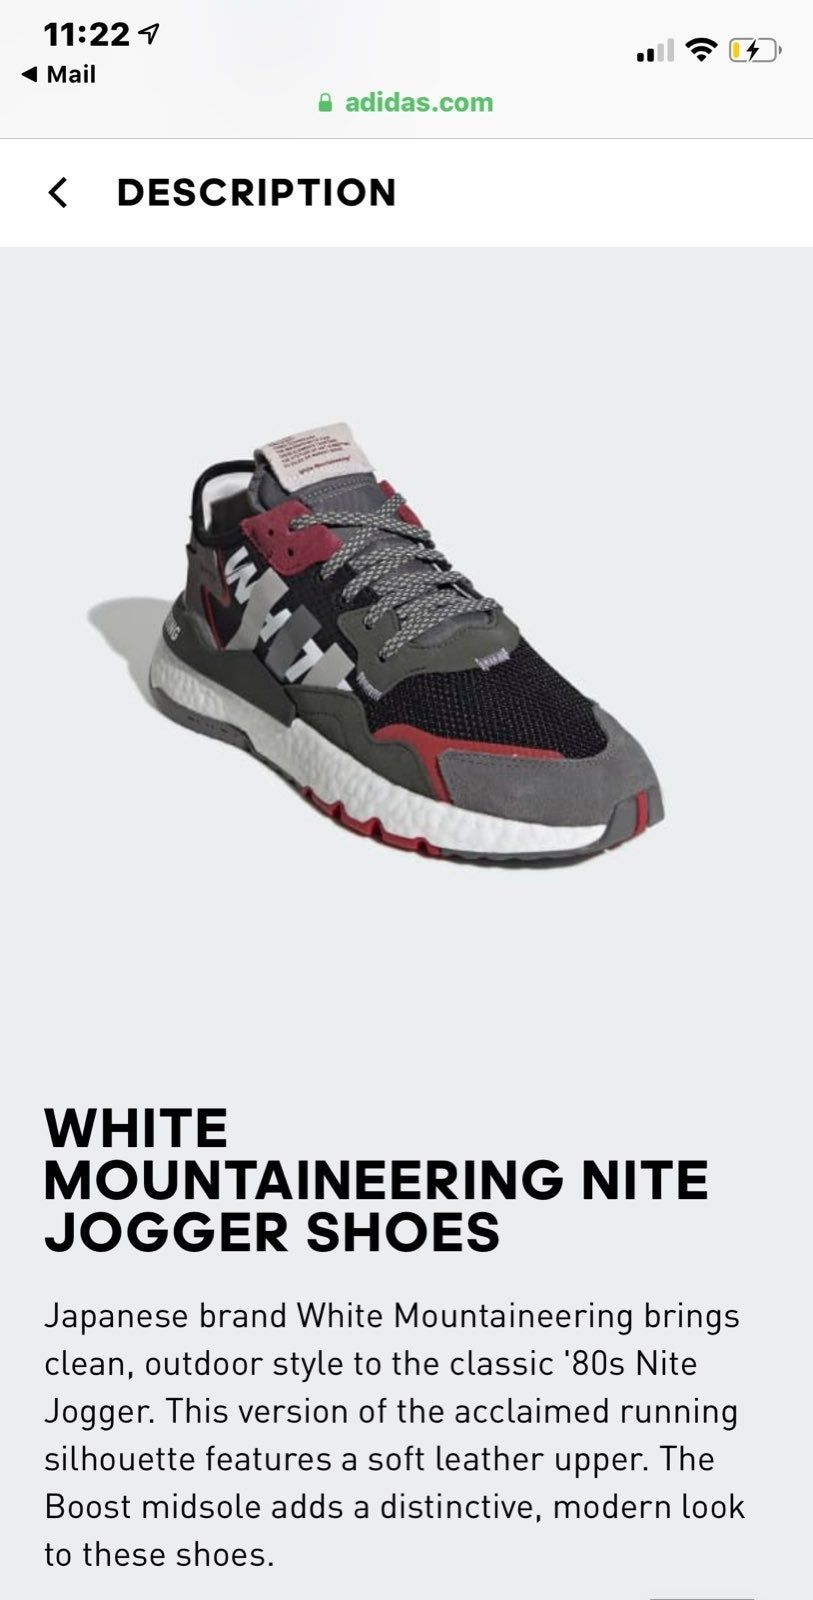 New Release Japanese Brand White Mountaineering Brings Clean